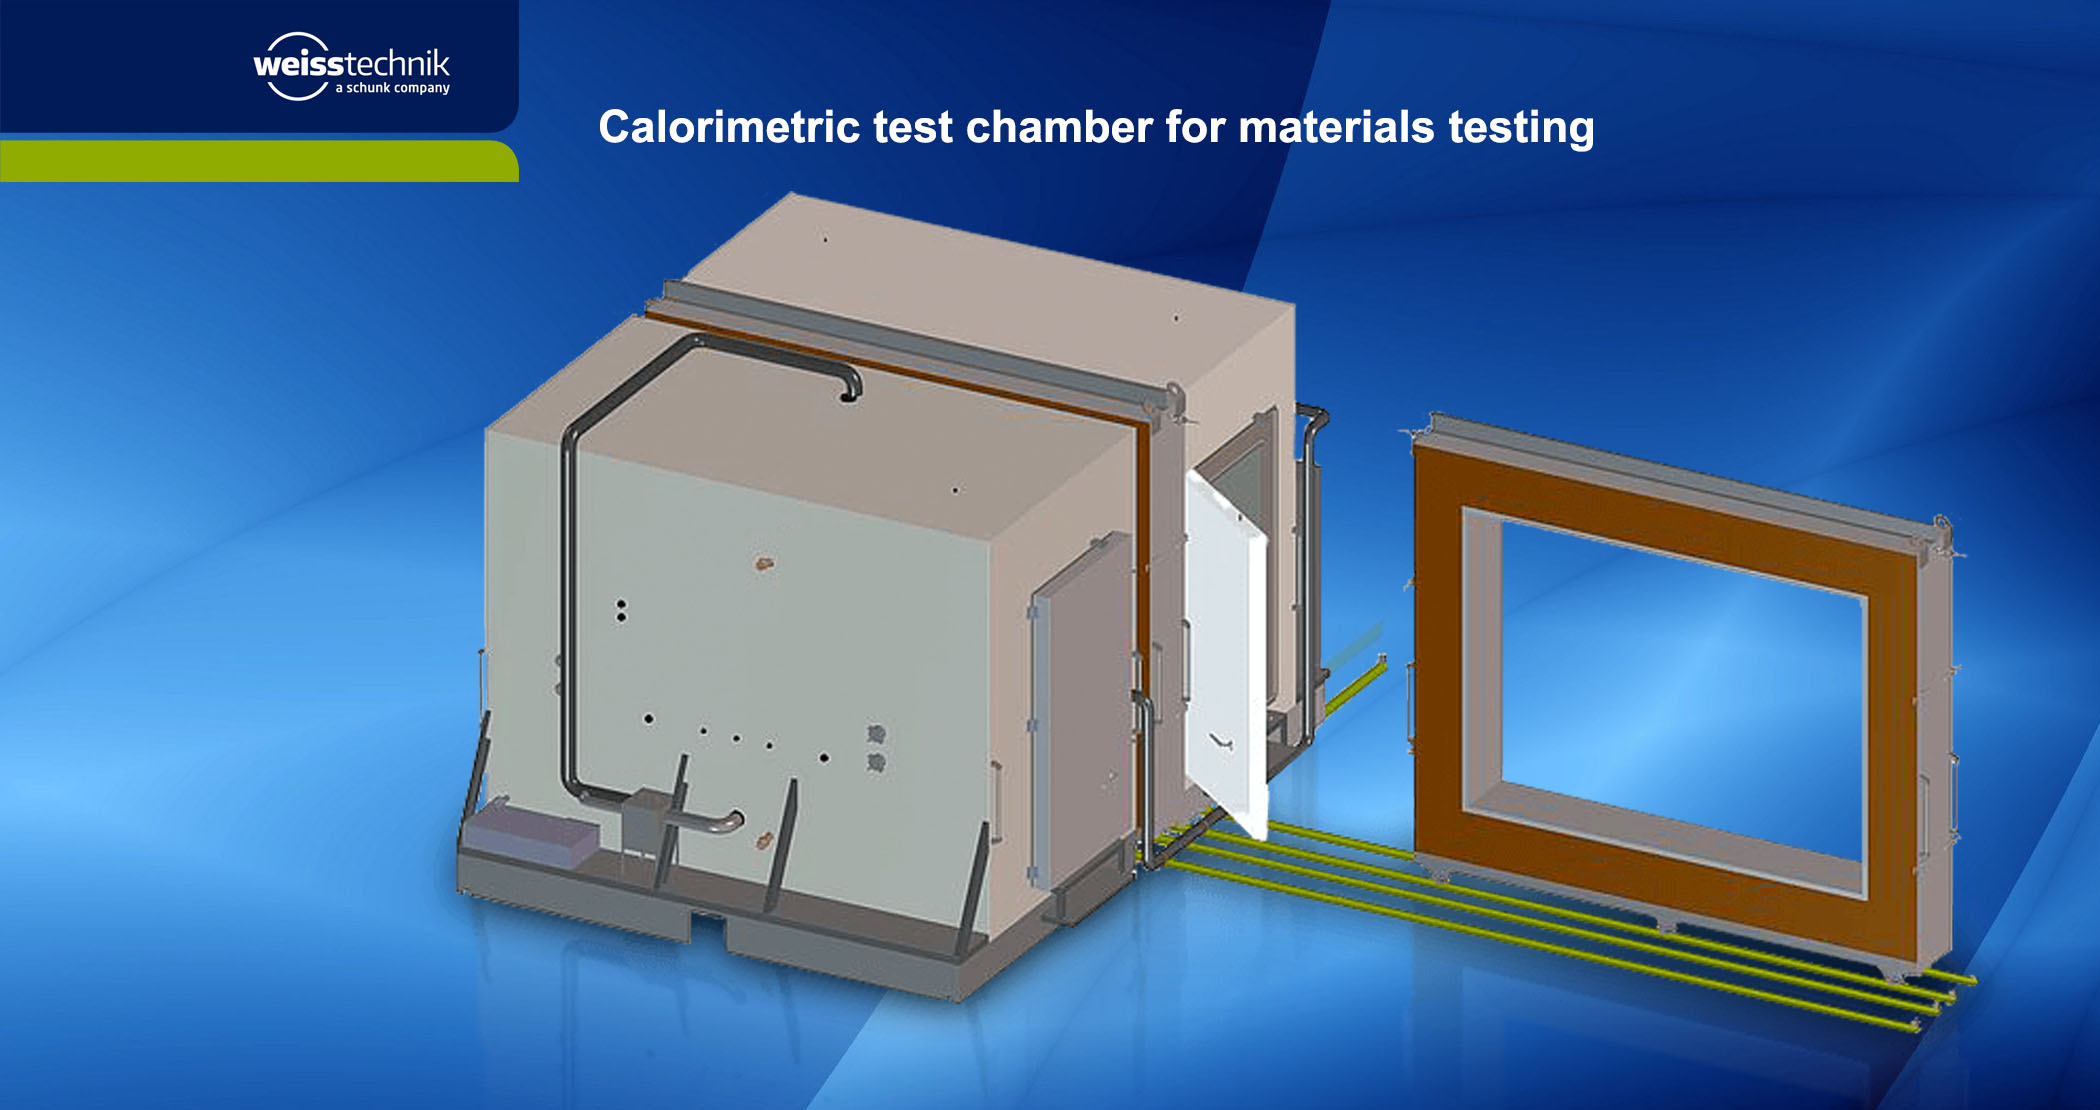 Calorimetric test chamber for materials testing